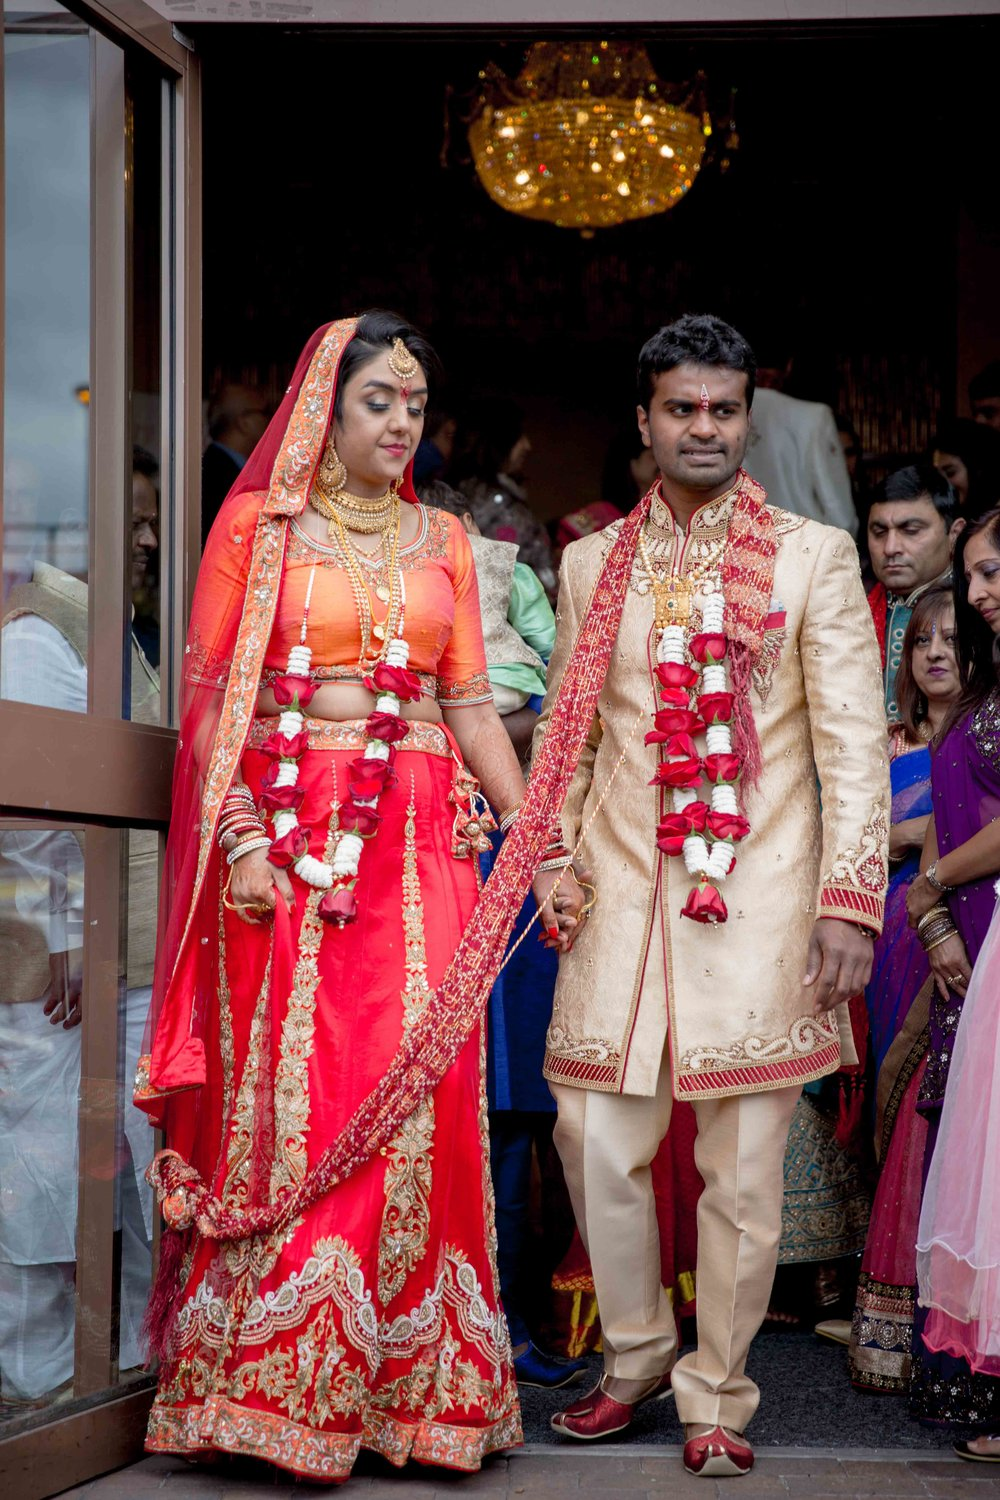 premier-banquetting-london-Hindu-asian-wedding-photographer-natalia-smith-photography-47.jpg